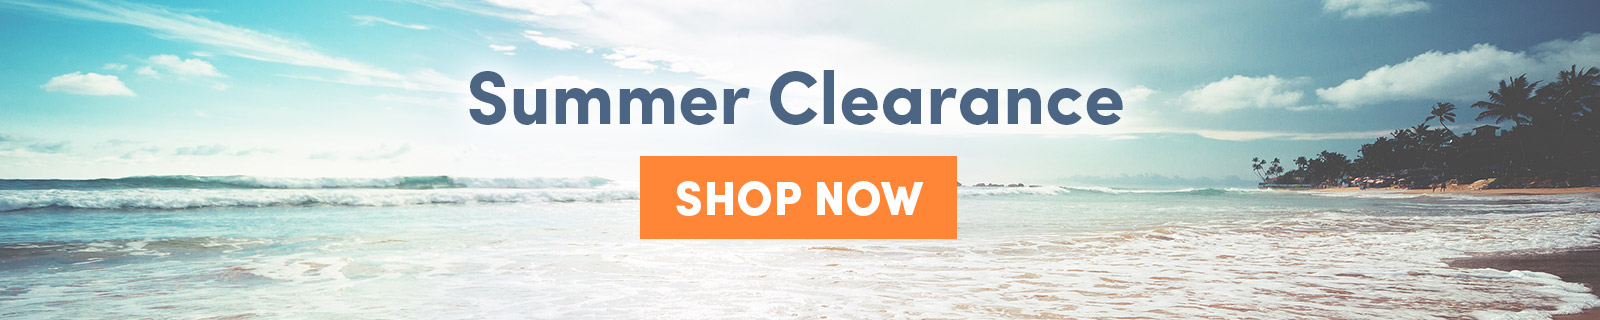 Summer Clearance. SHOP NOW